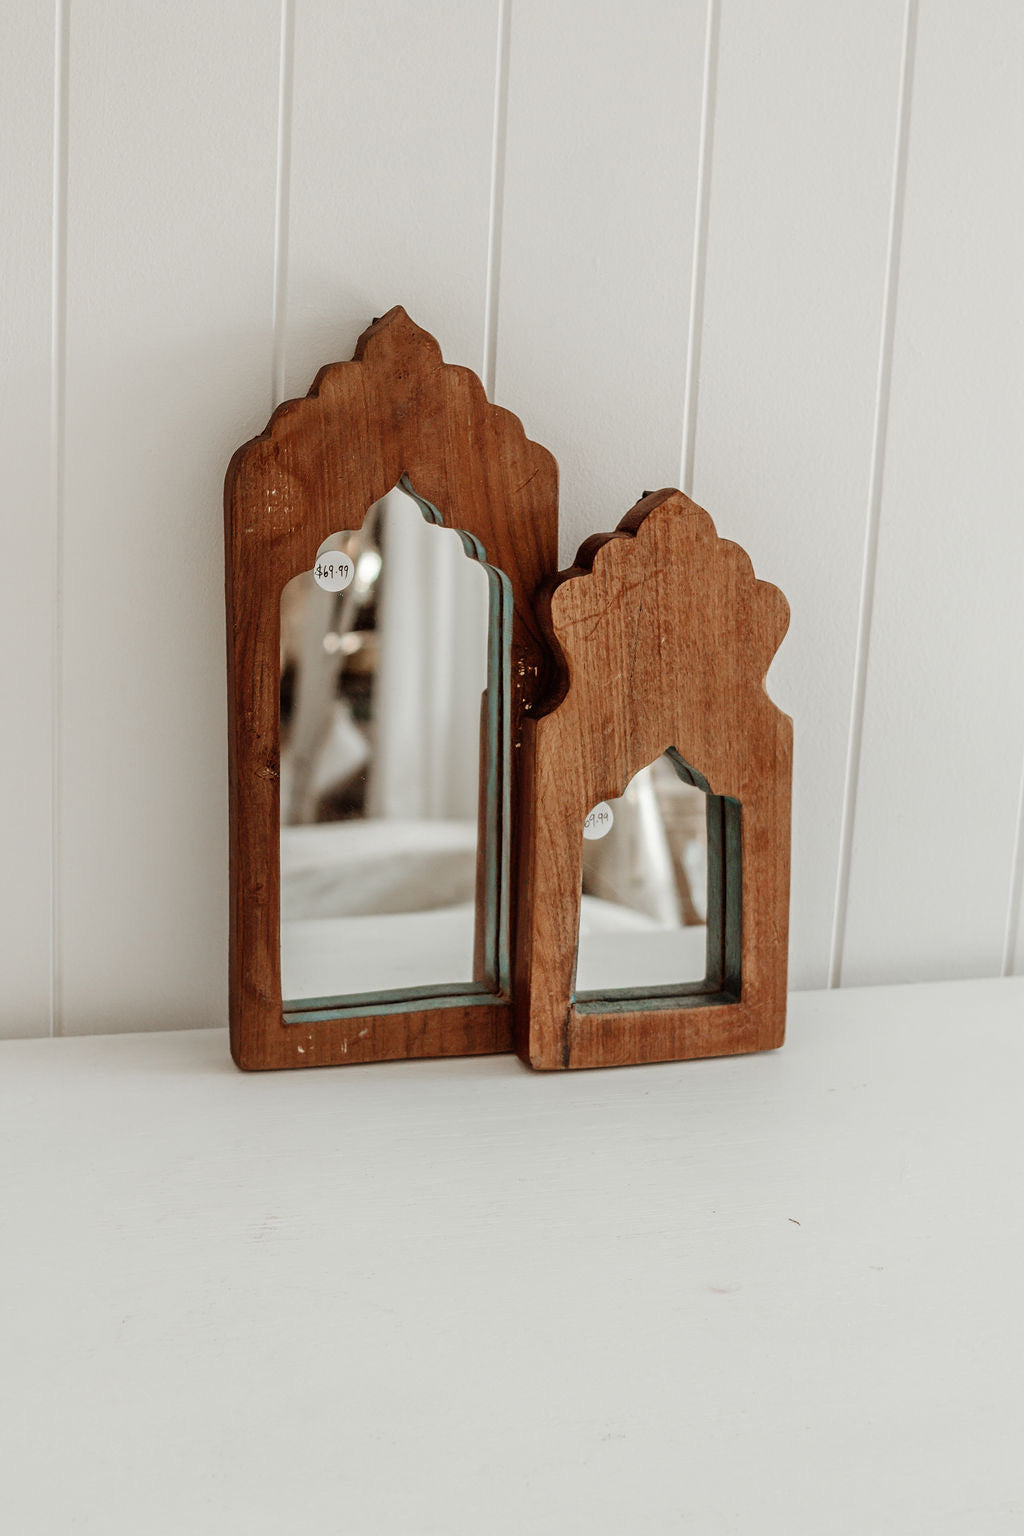 Small Timber framed mirrors